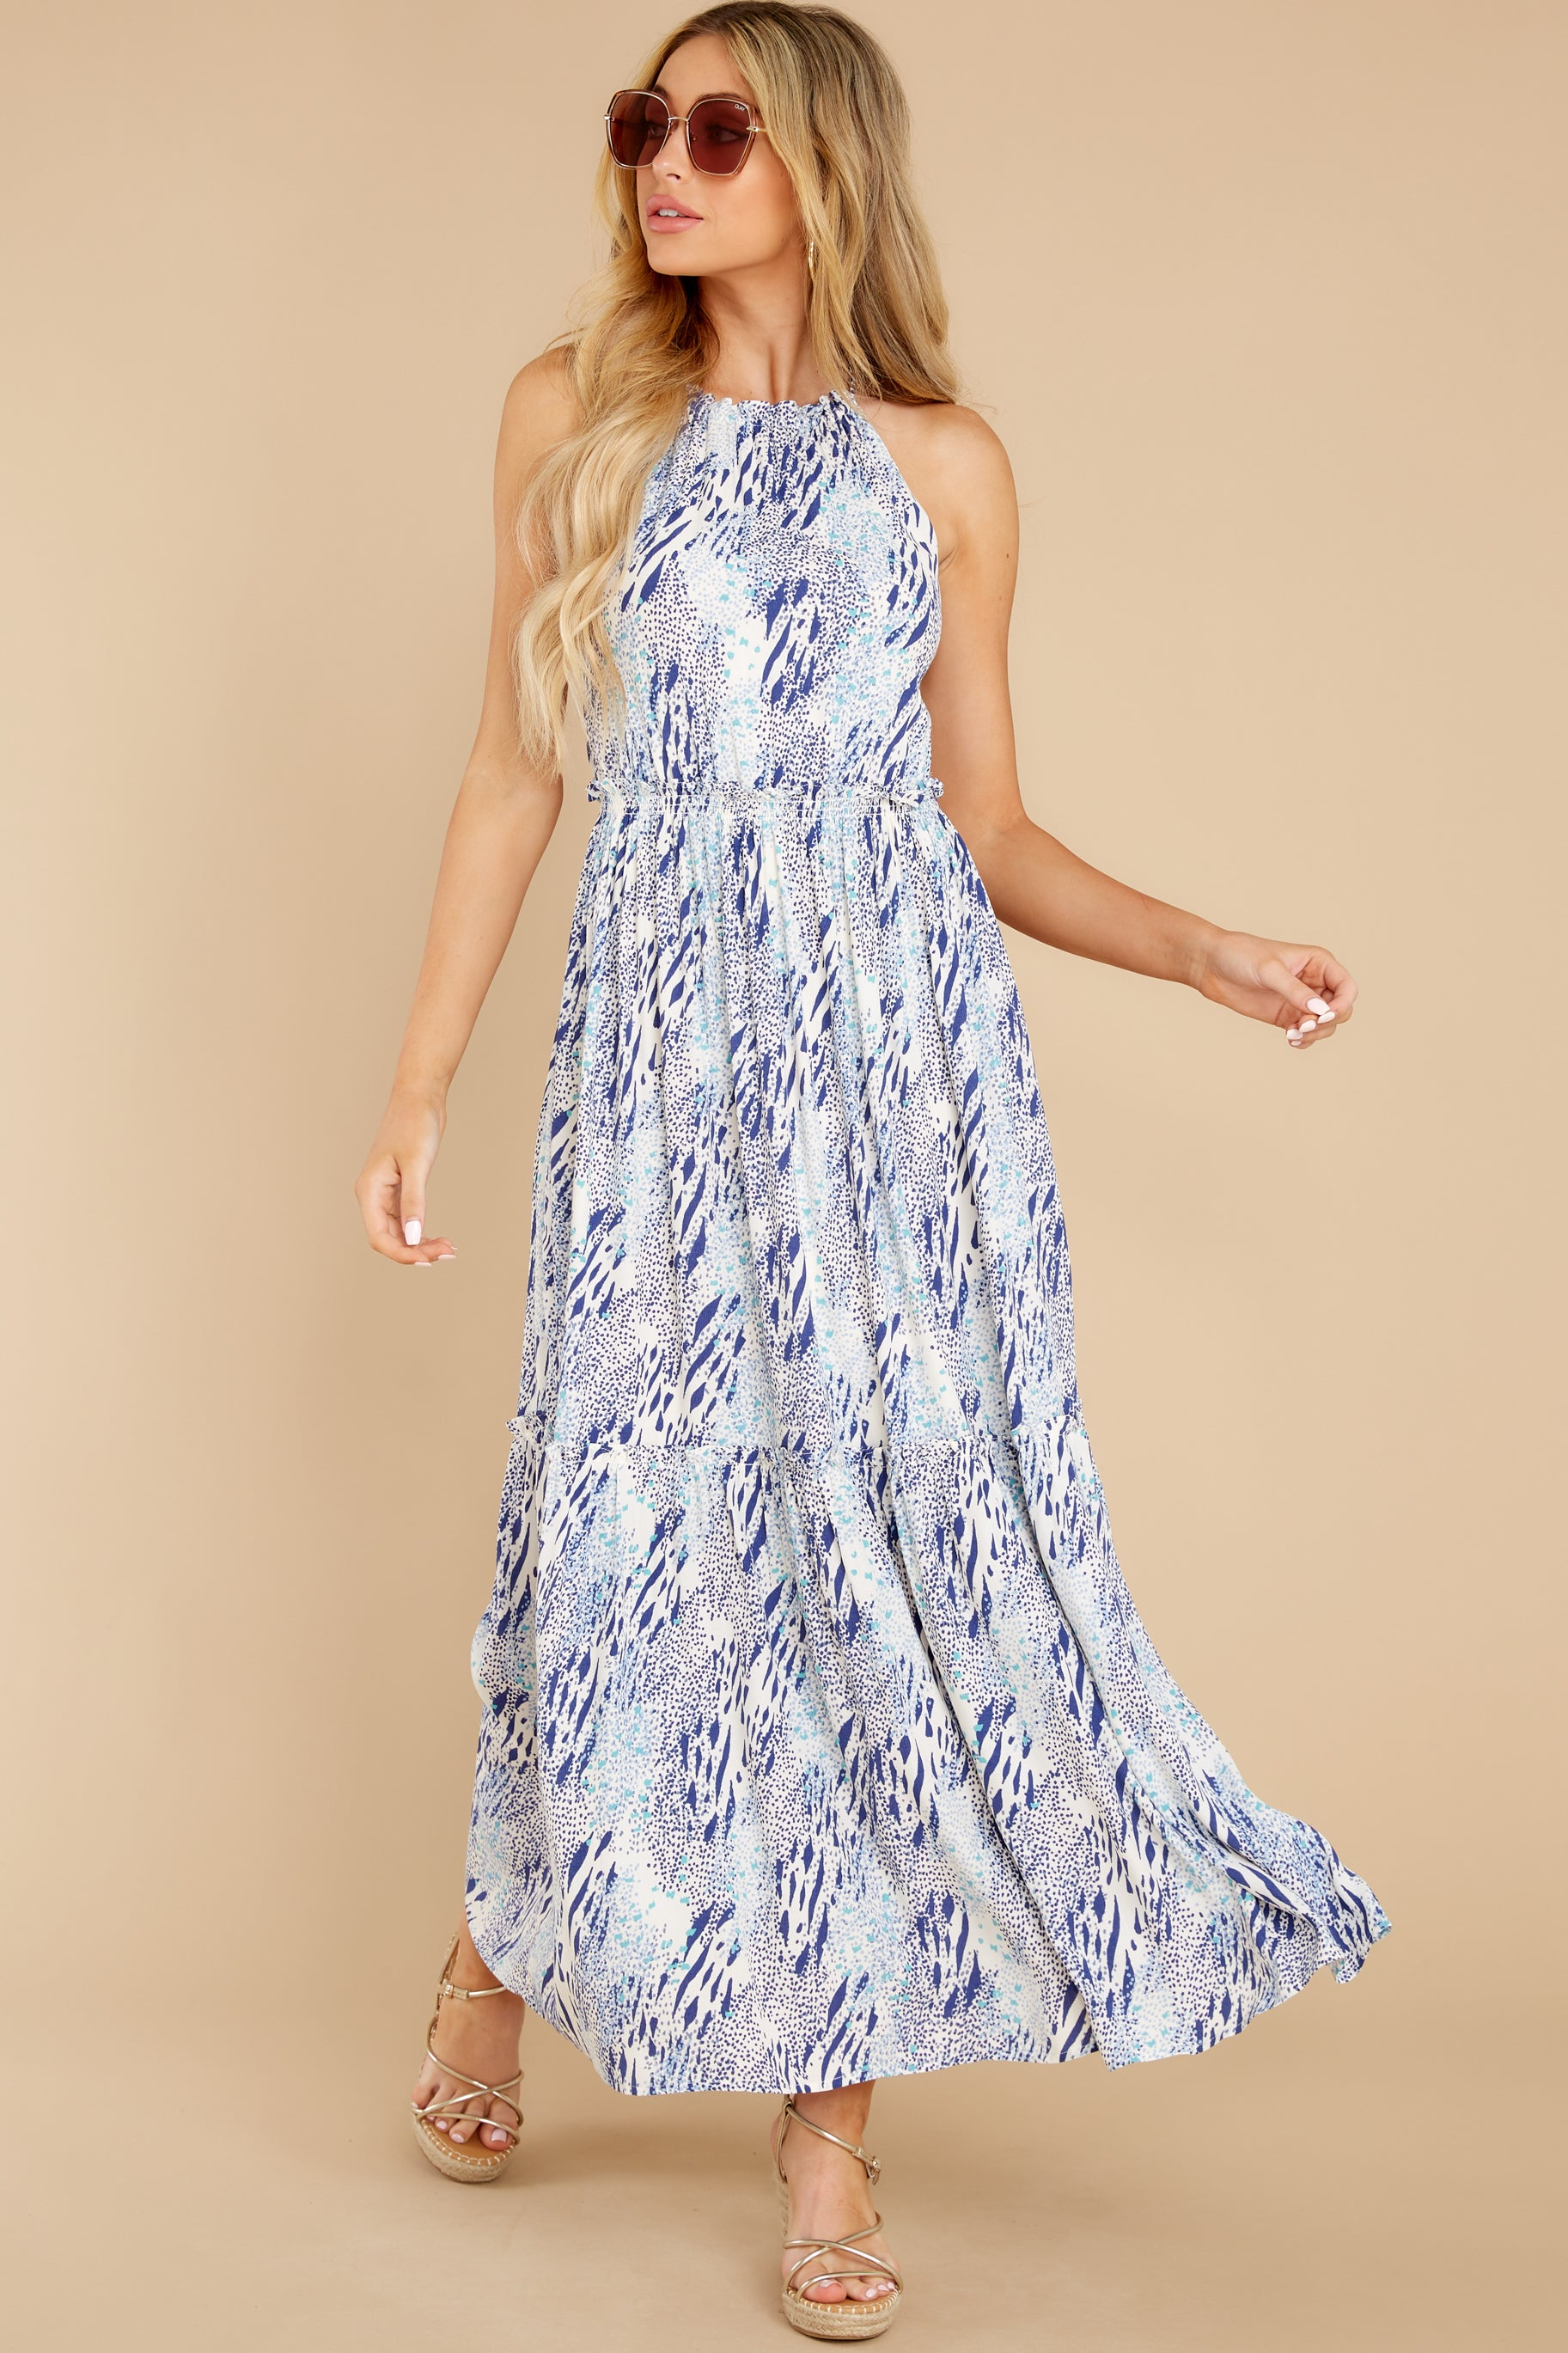 2 Standing Water Blue Multi Print Maxi Dress at reddress.com